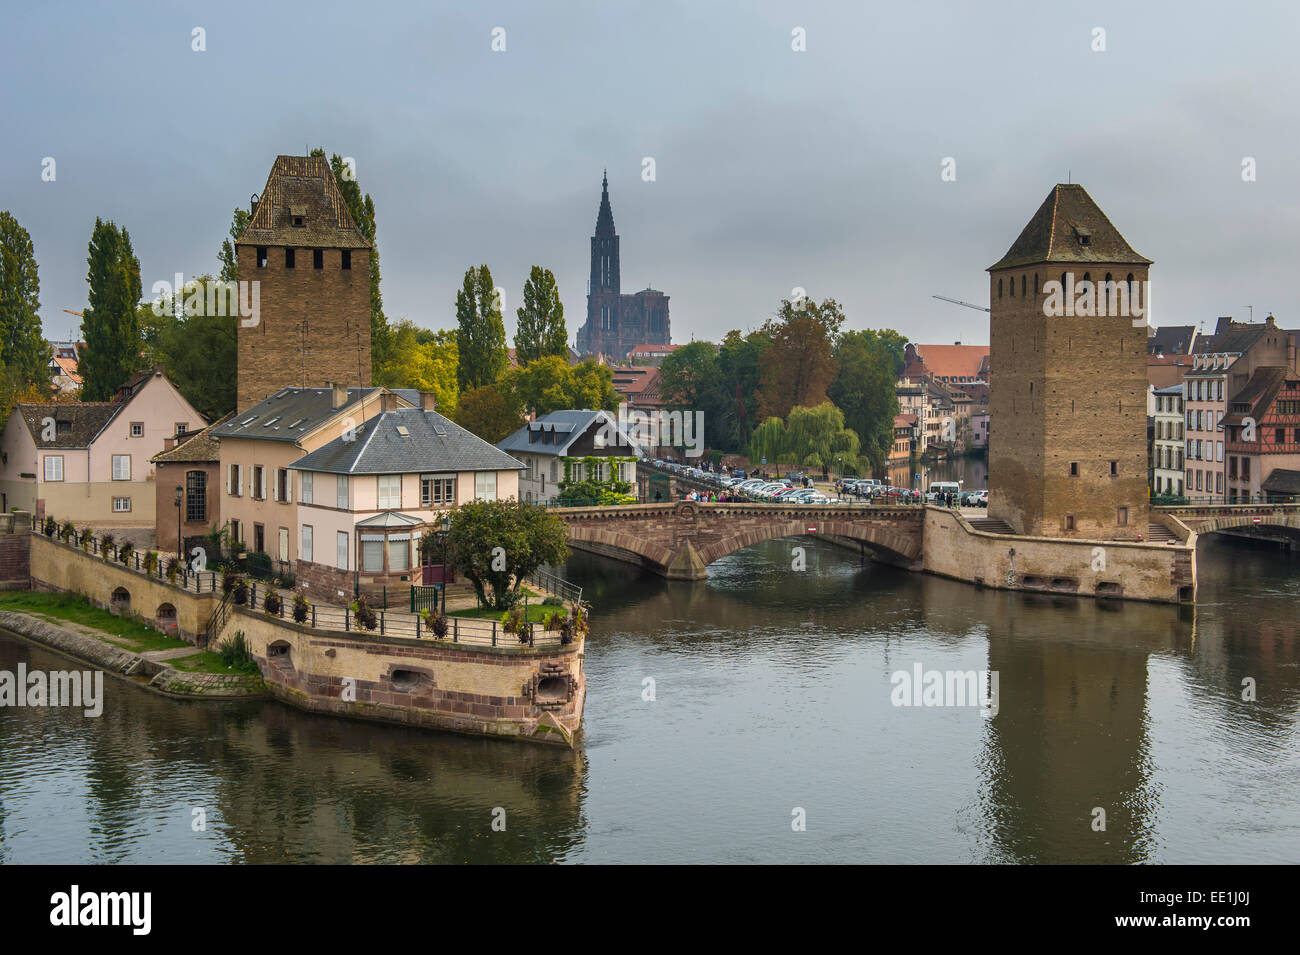 Ponts Couverts, UNESCO World Heritage Site, Ill River, Strasbourg, Alsace, France, Europe - Stock Image